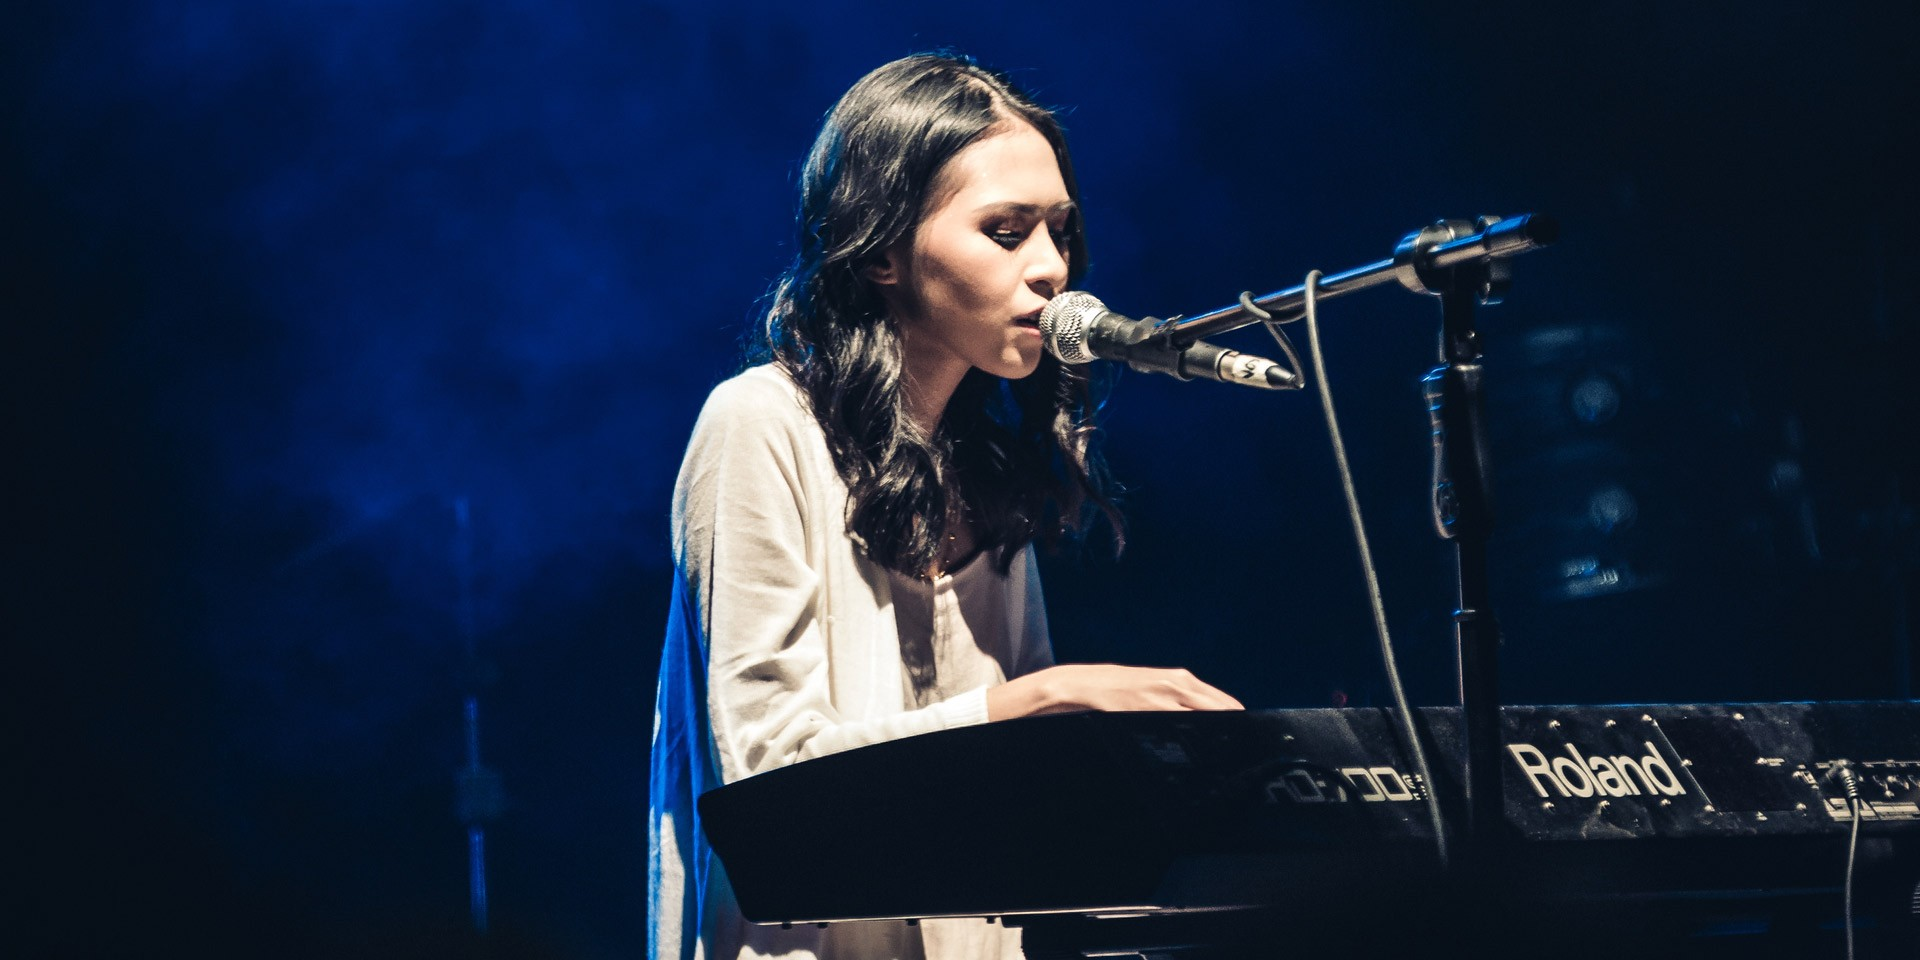 Clara Benin channels Lorde with 'Team' cover – listen